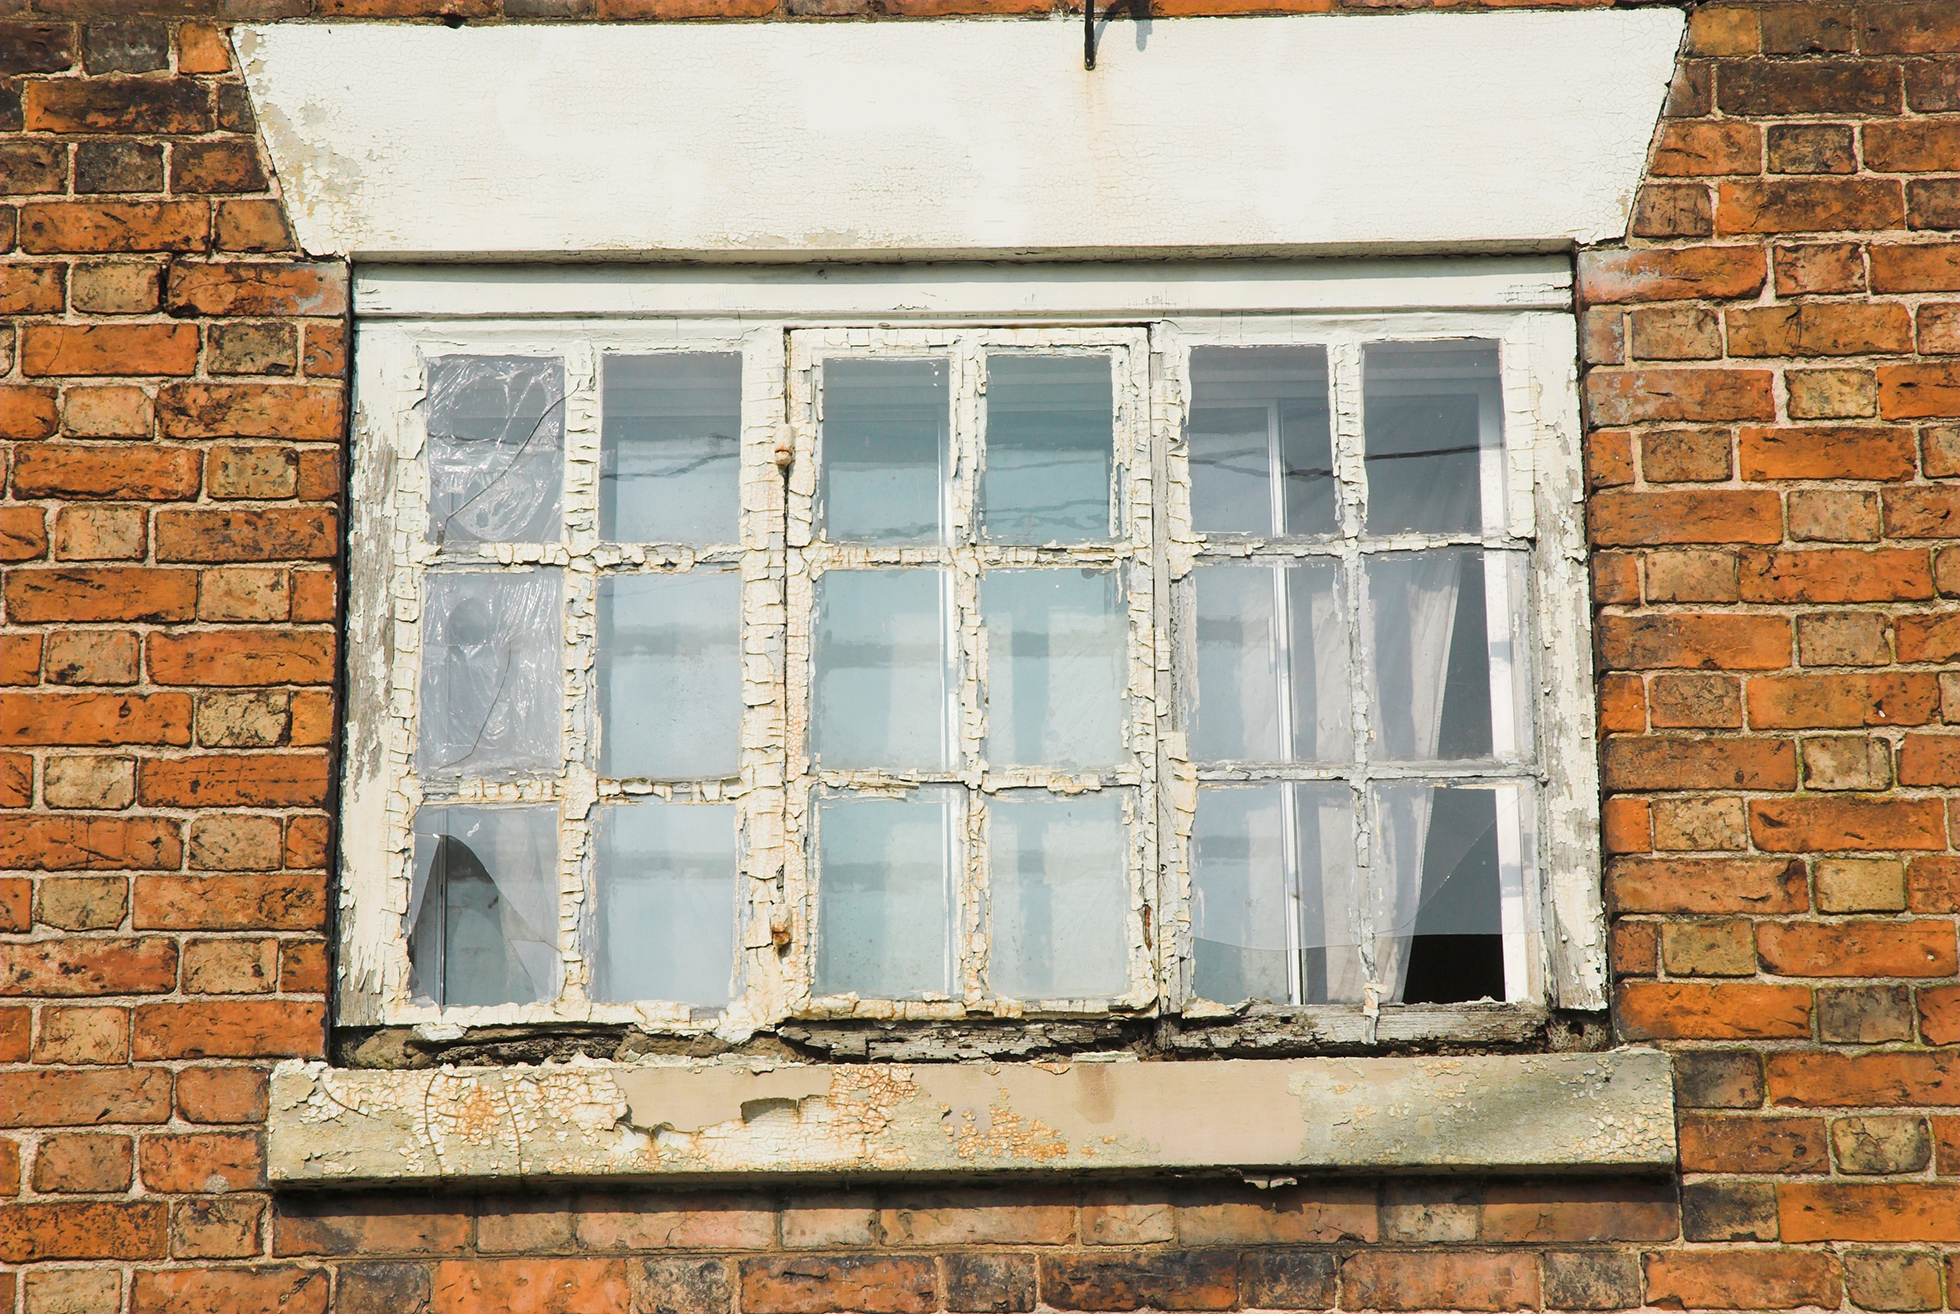 Rotting window at a home